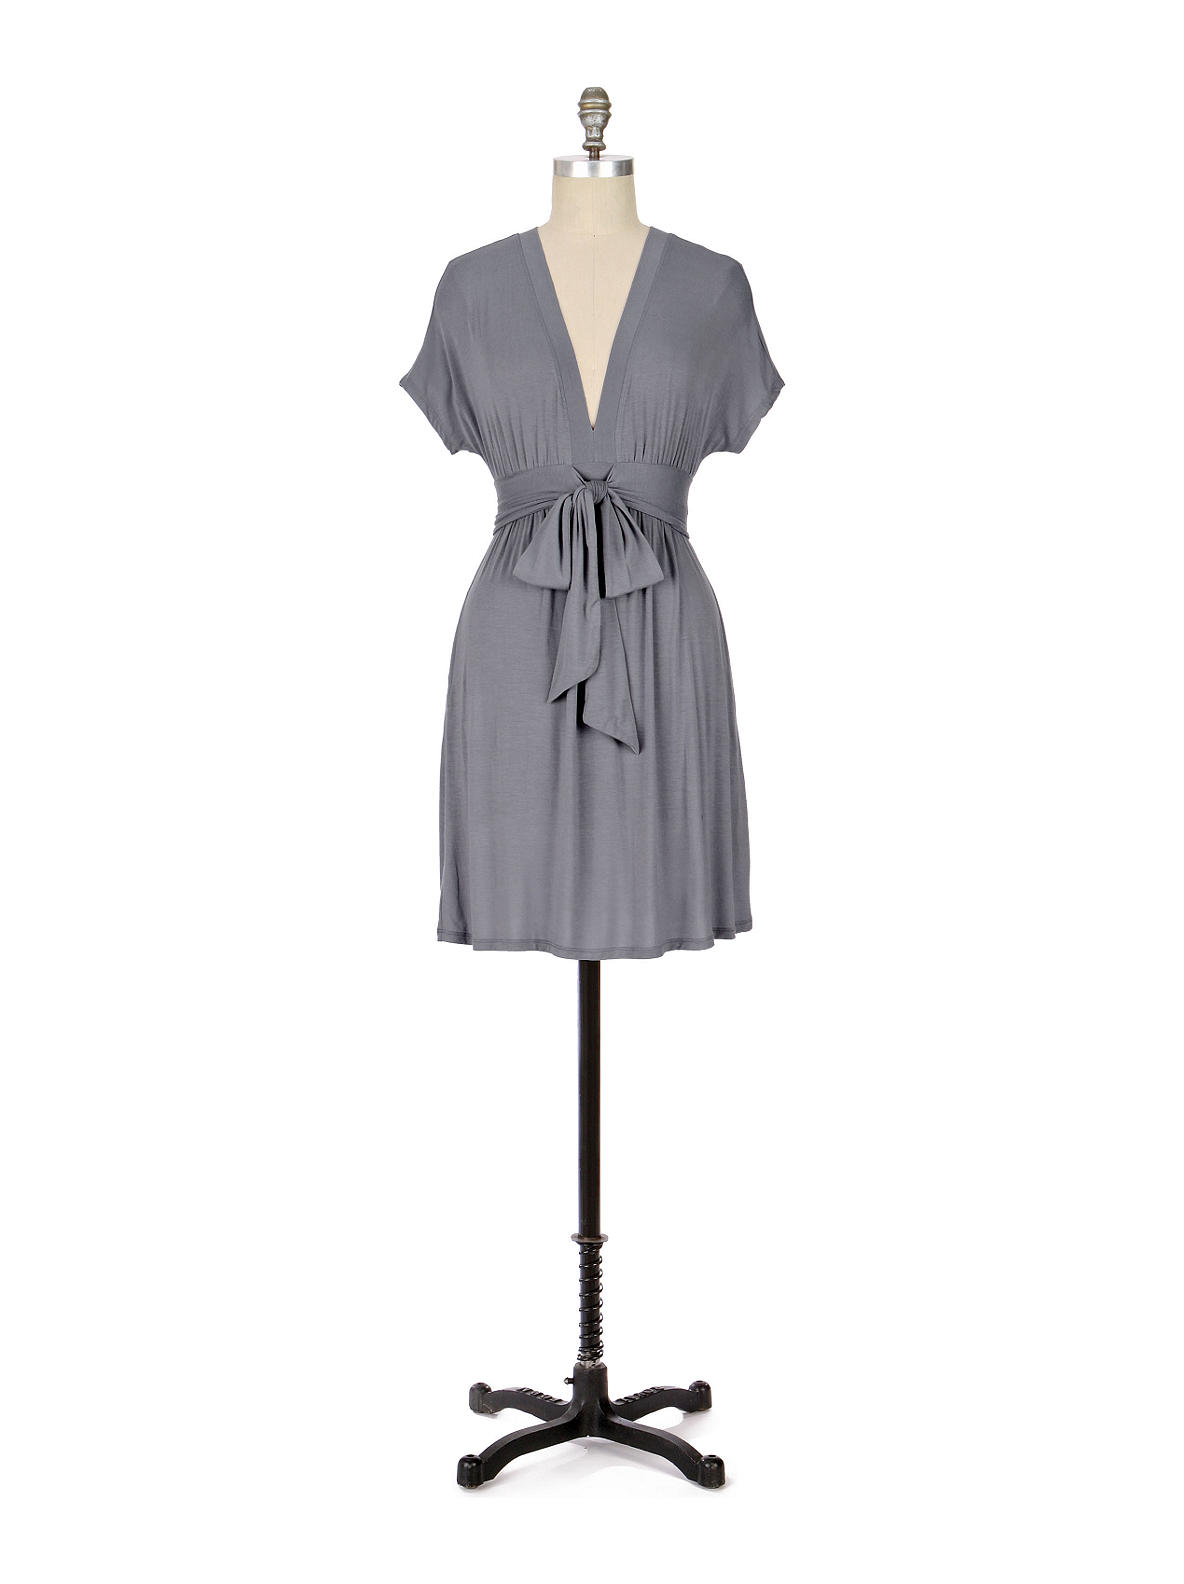 Soup & Sandwich Chemise - Anthropologie.com :  anne pinkerton house dress anthropologie dress